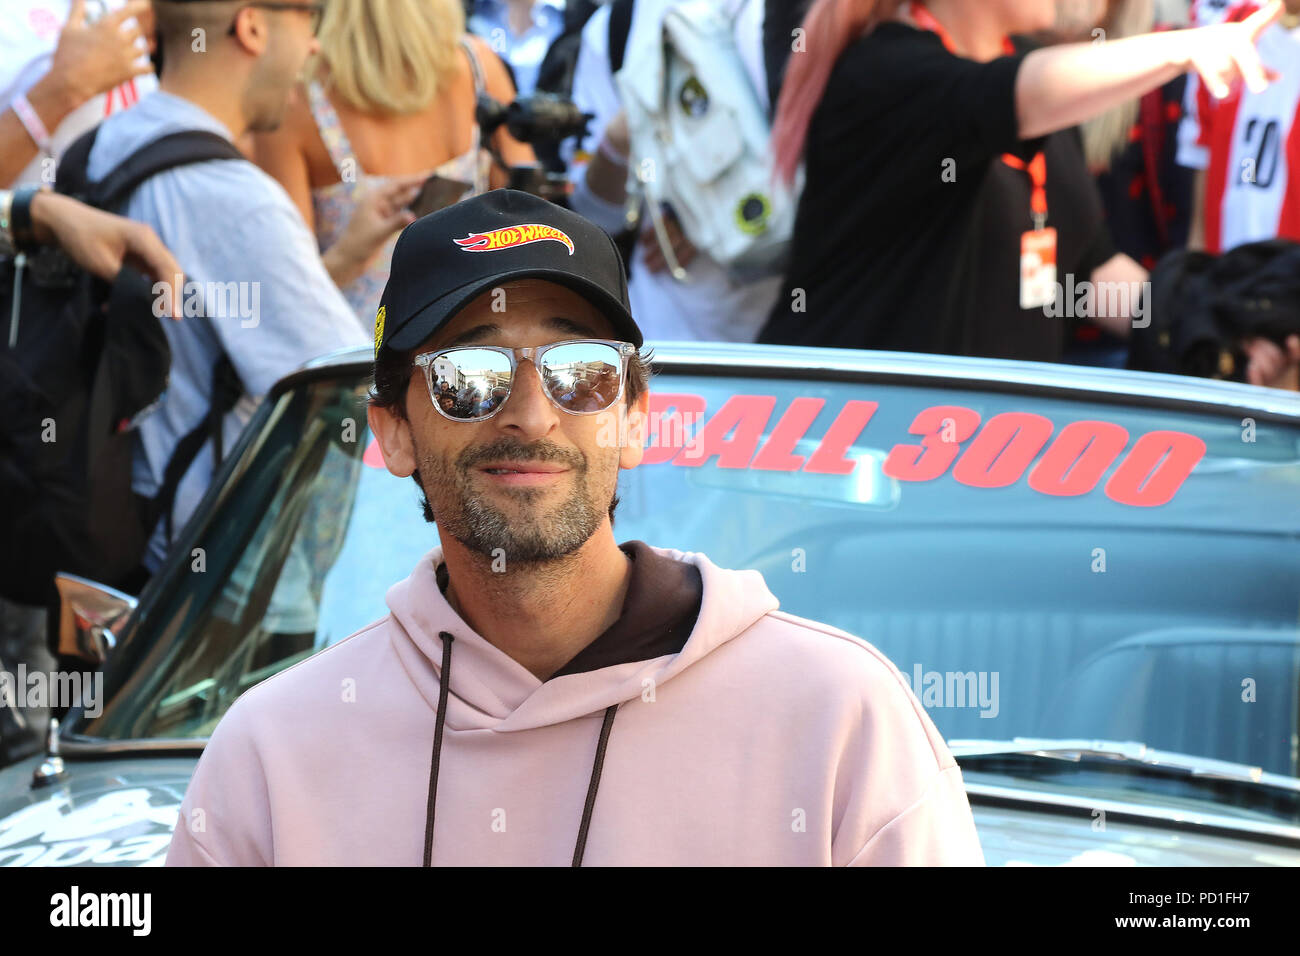 London, UK. 05th Aug, 2018. Adrien Brody, Gumball 3000 launch and flag drop, Covent Garden, London, UK, 05 August 2018, Photo by Richard Goldschmidt, Celebs come together for an epic road trip driving from London to Tokyo in just 7 days to raise money for the Gumball 3000 Foundation to support a variety of youth-based projects in low-income communities. Credit: Rich Gold/Alamy Live News - Stock Image